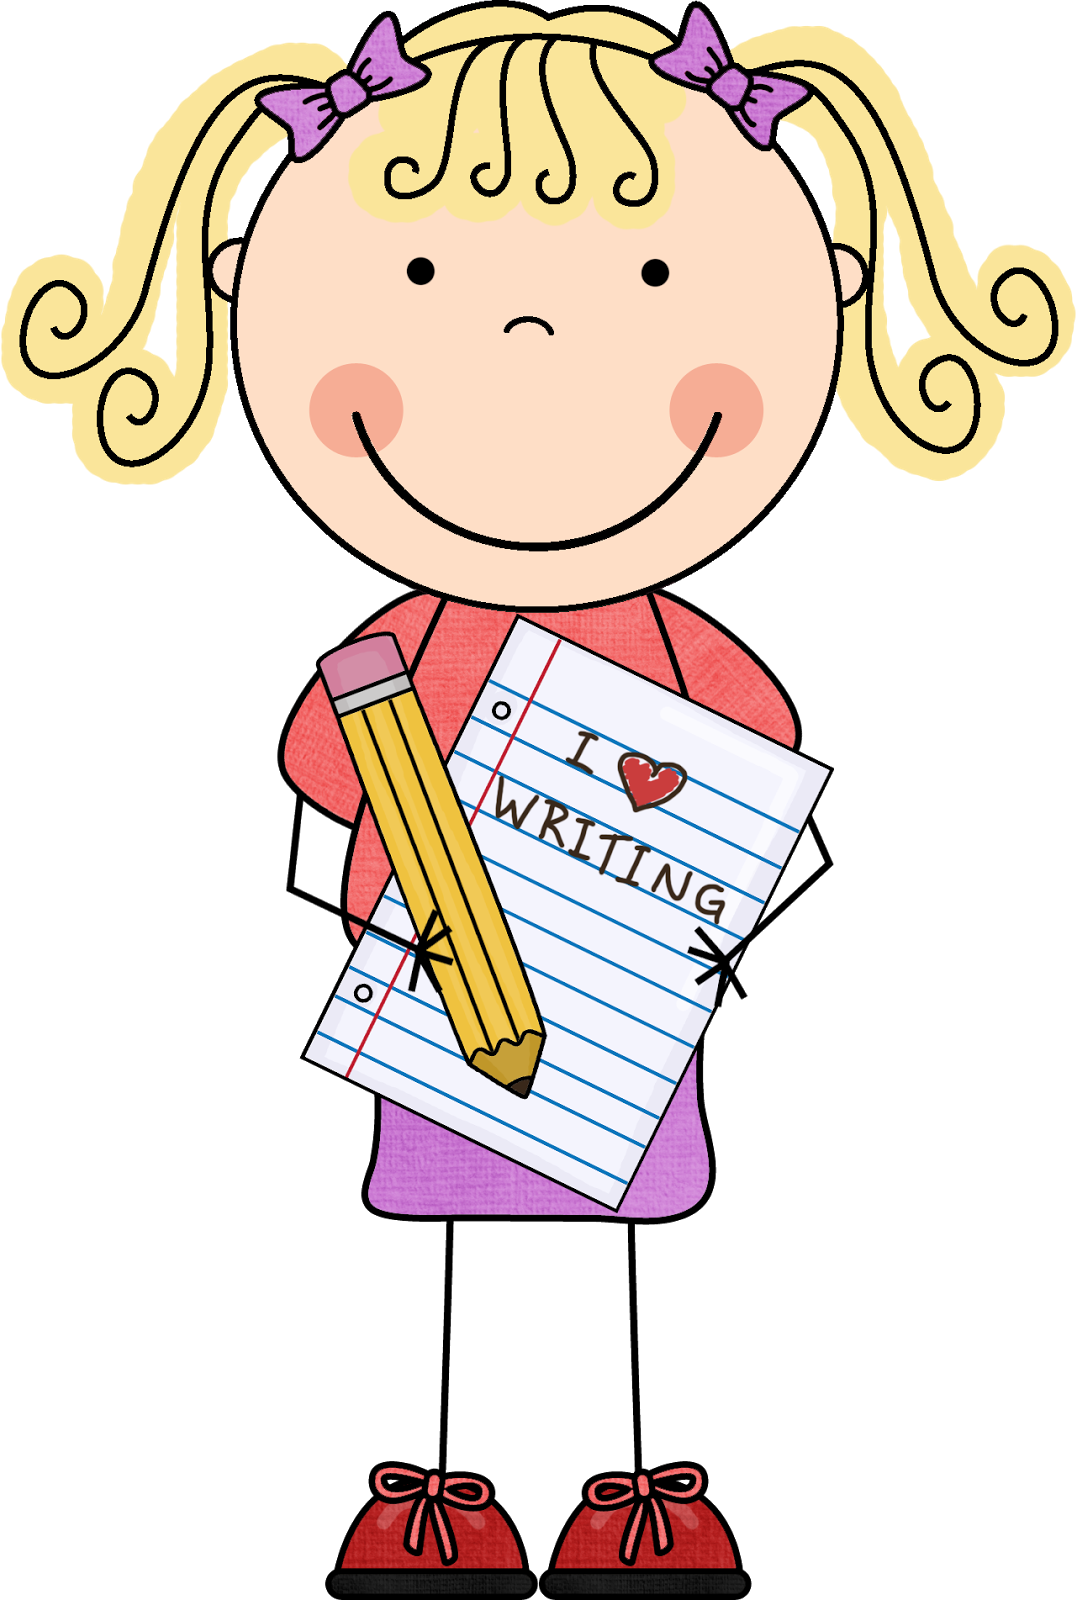 Creative clipart journal. Image of girl writing